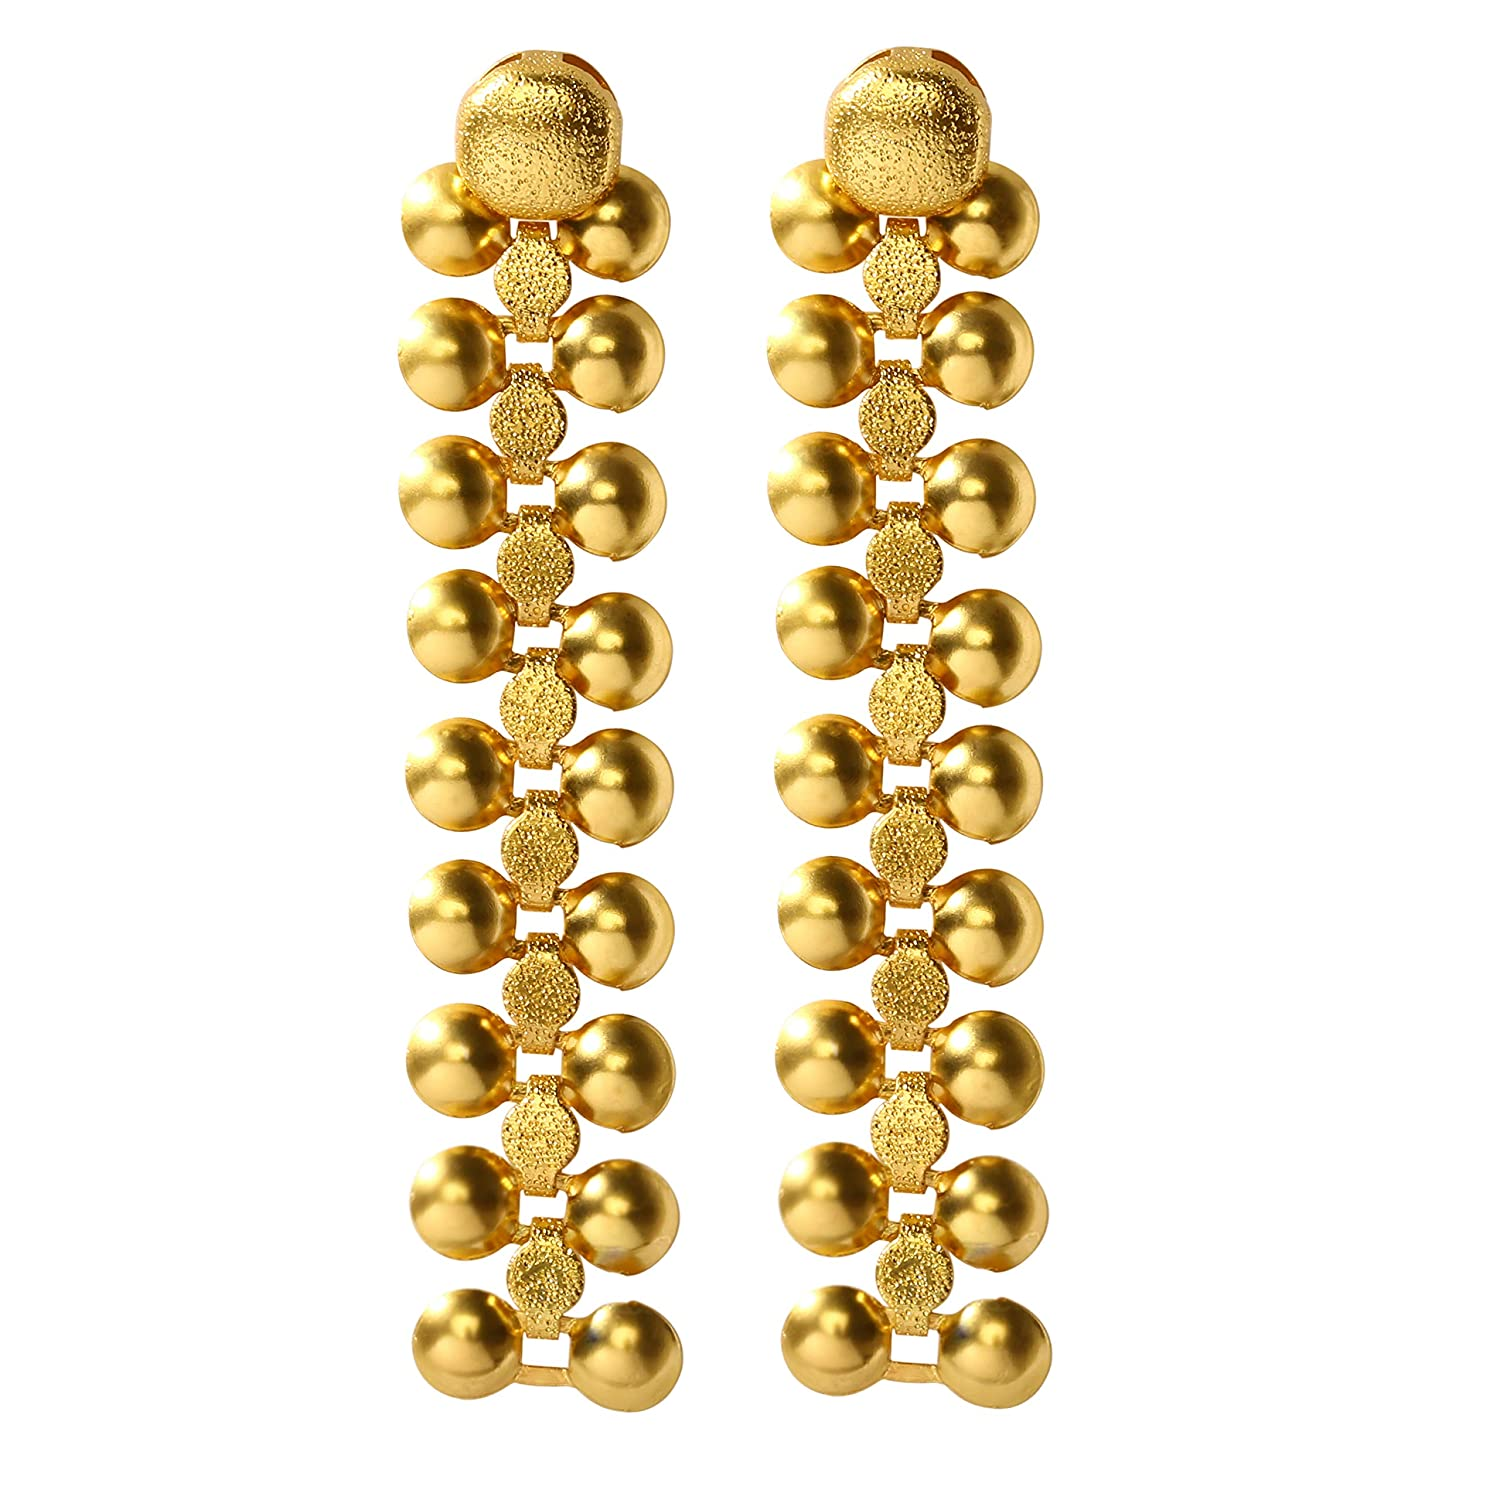 14K Gold Plated Earrings Dangling Long Drop Hypoallergenic Studs Indian Unique Vintage Jewelry for Women Girls